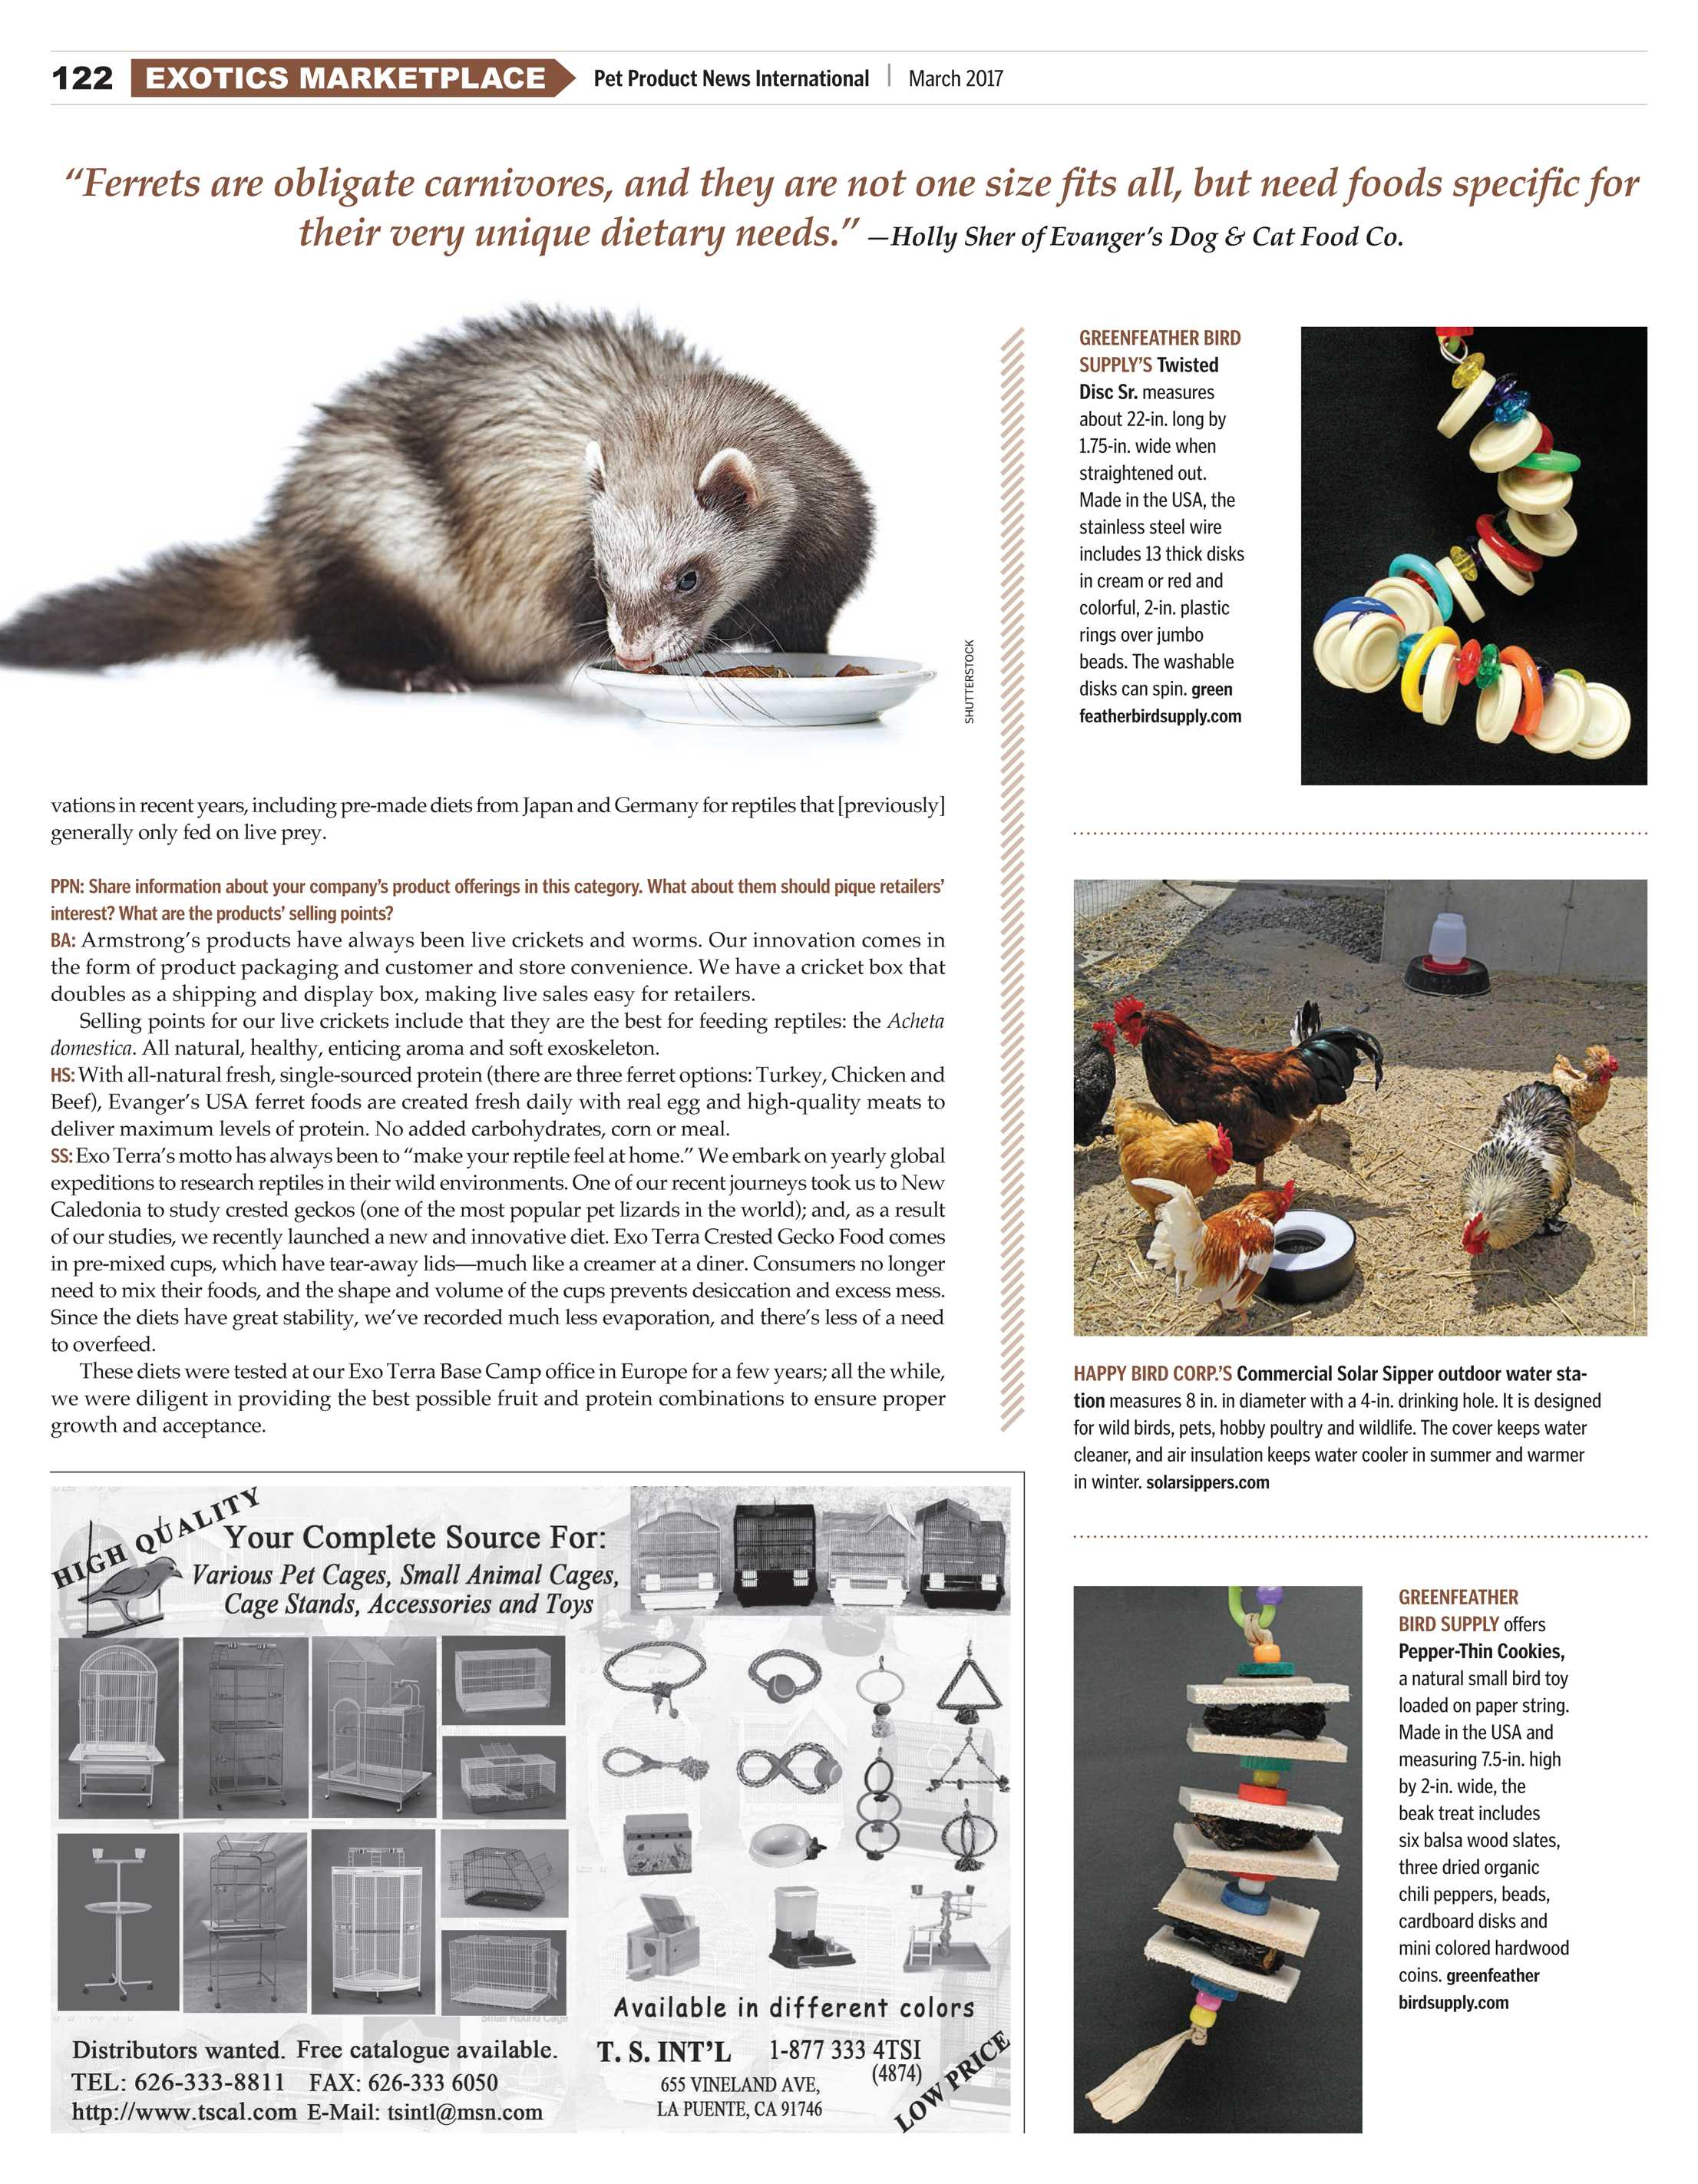 Pet Product News - March 2017 - page 122